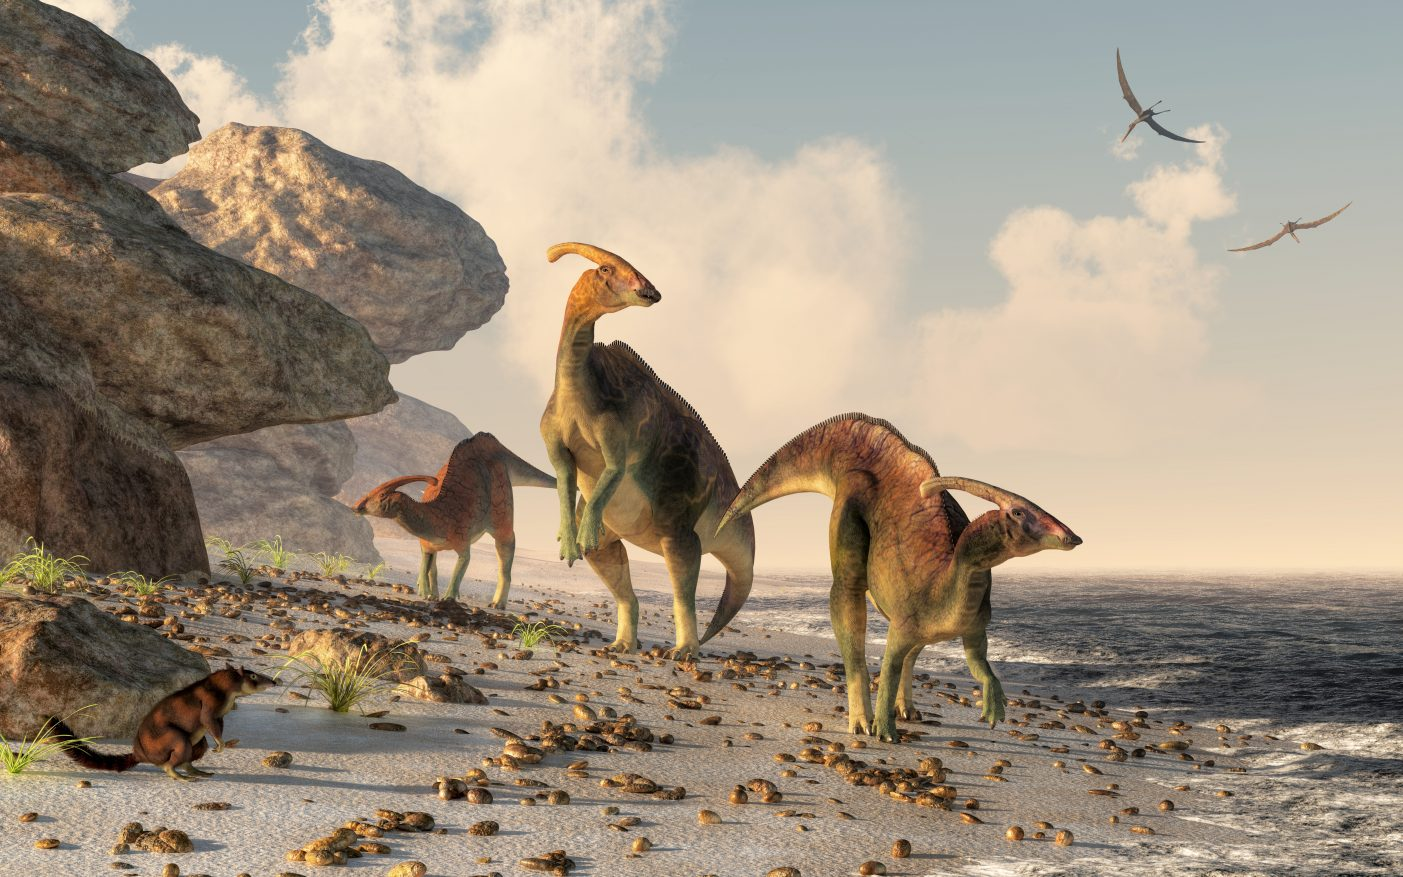 Isotopes in the teeth of dinosaurs showed where the ancient dinosaurs lived and what they ate